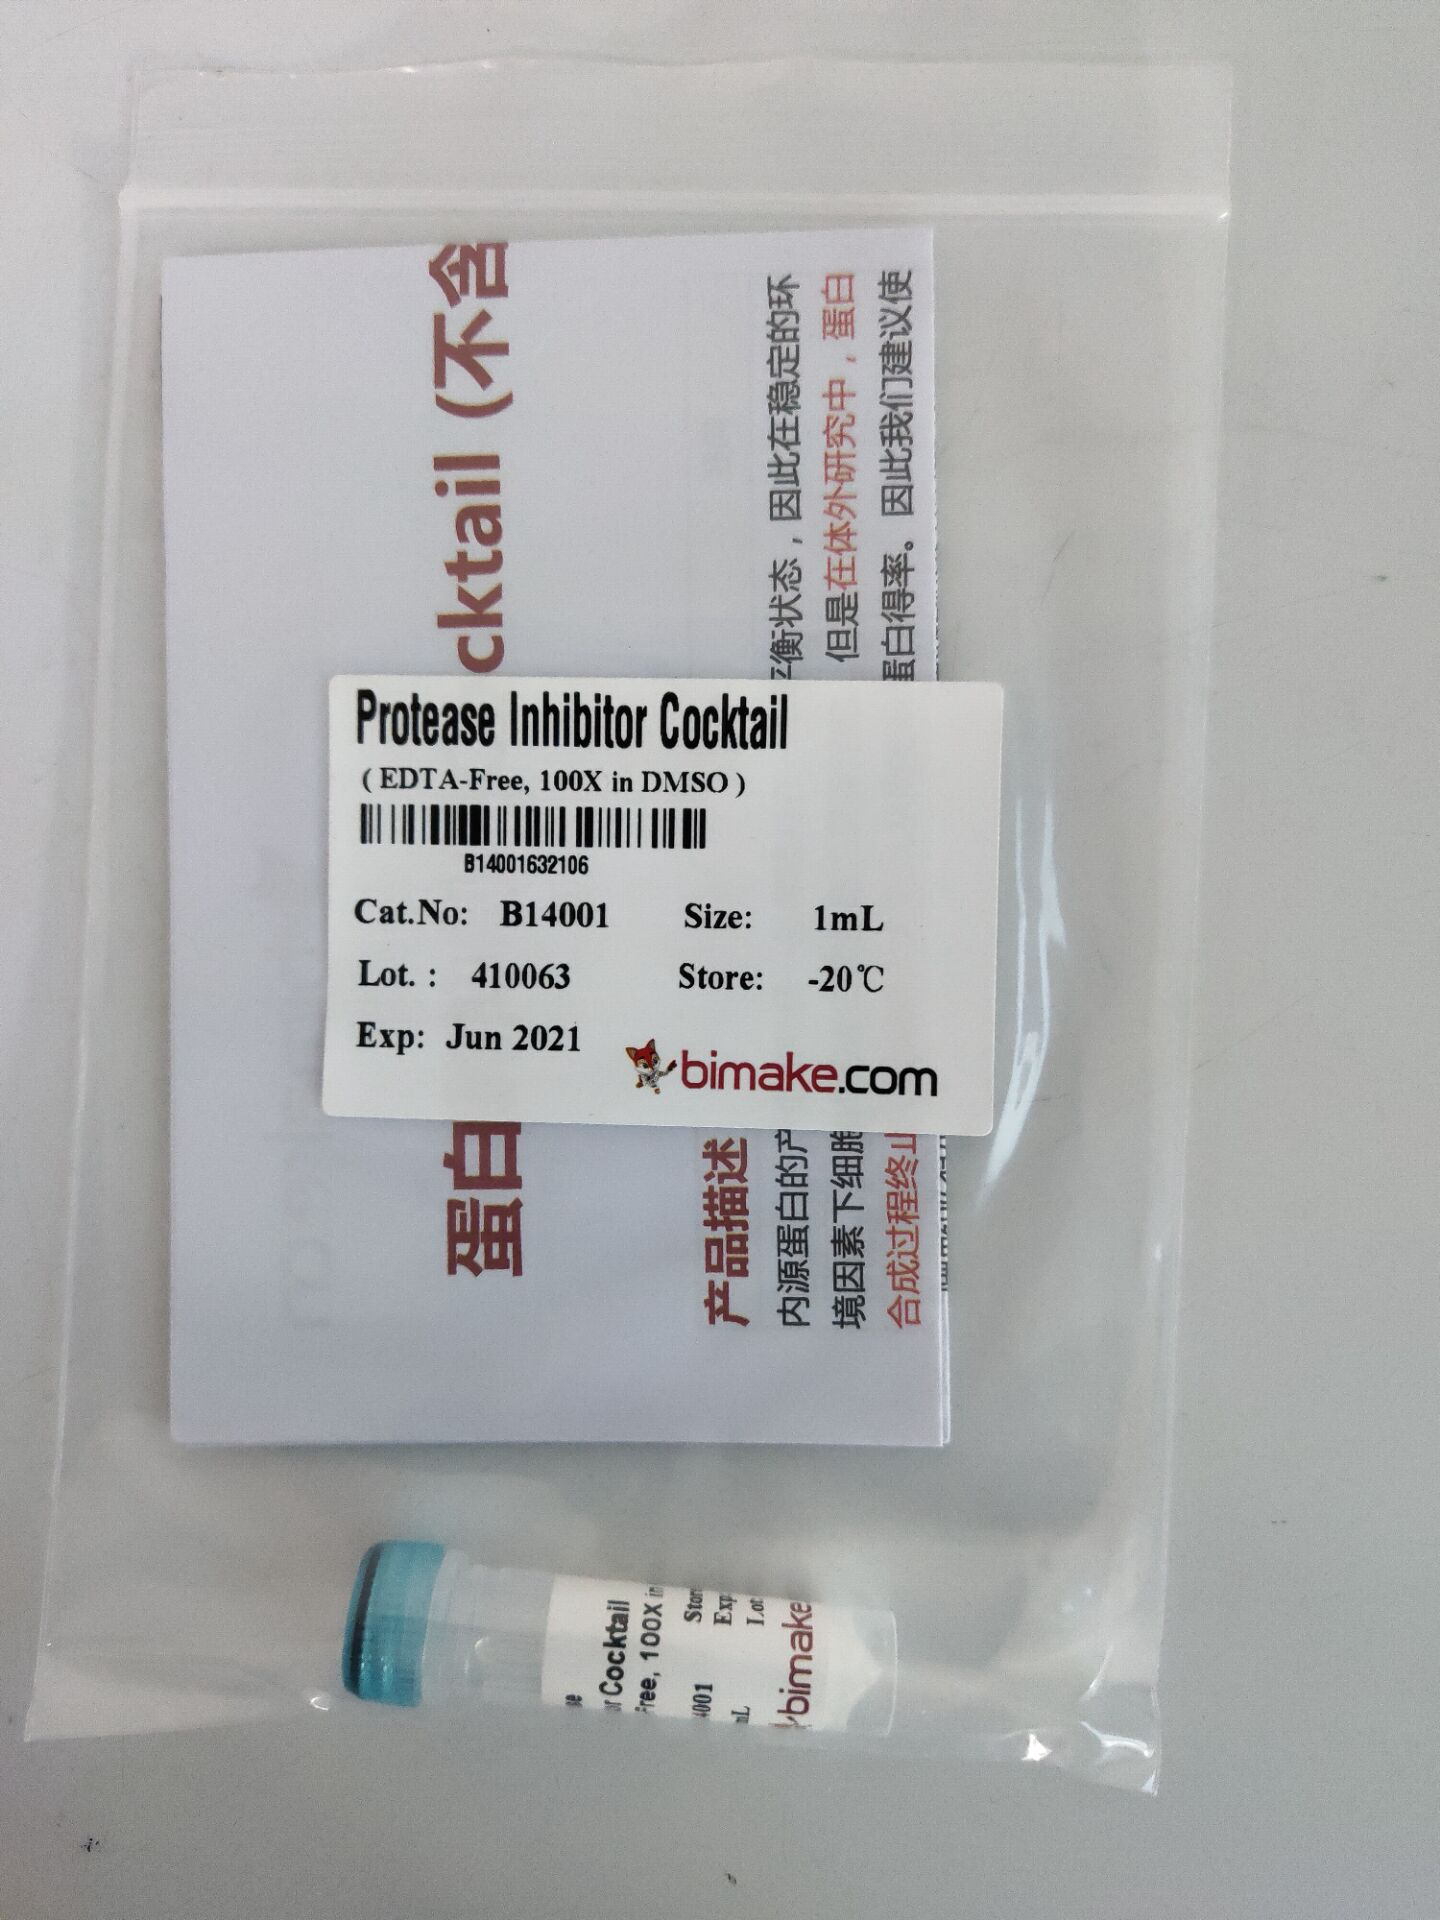 Protease Inhibitor Cocktail (EDTA-Free, 100X in DMSO)